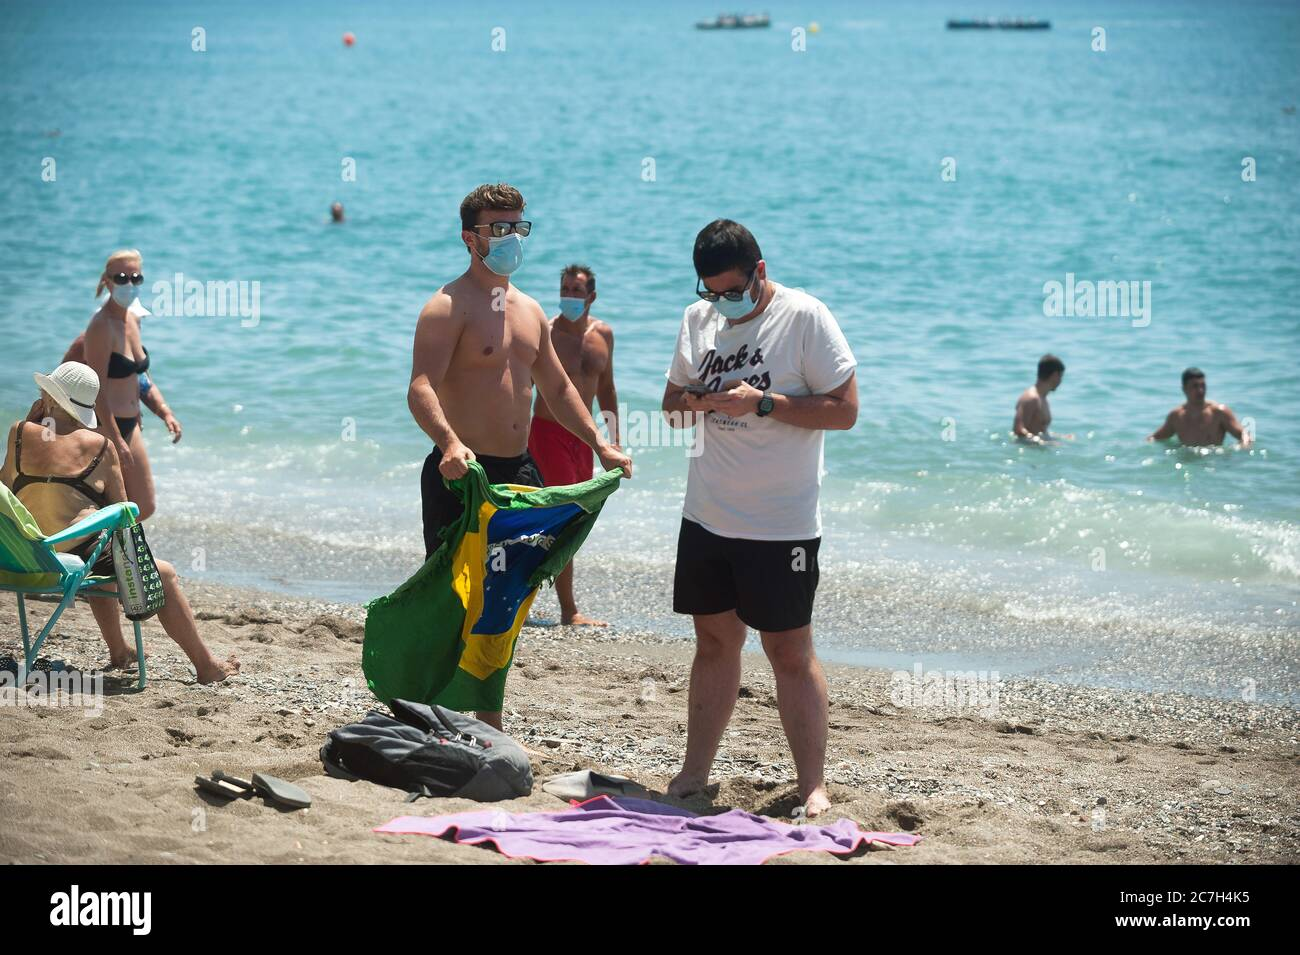 Malaga, Spain. 17th July, 2020. People wearing face masks are seen at La Malagueta beach amid coronavirus crisis.The appearance of new coronavirus (COVID-19) outbreak in Spain after easing of restrictions has caused the regional government to impose the obligatory use of face masks in outdoors places even when they observe a safe distance between people. This measure tries to curb the spread of coronavirus pandemic. Credit: SOPA Images Limited/Alamy Live News Stock Photo